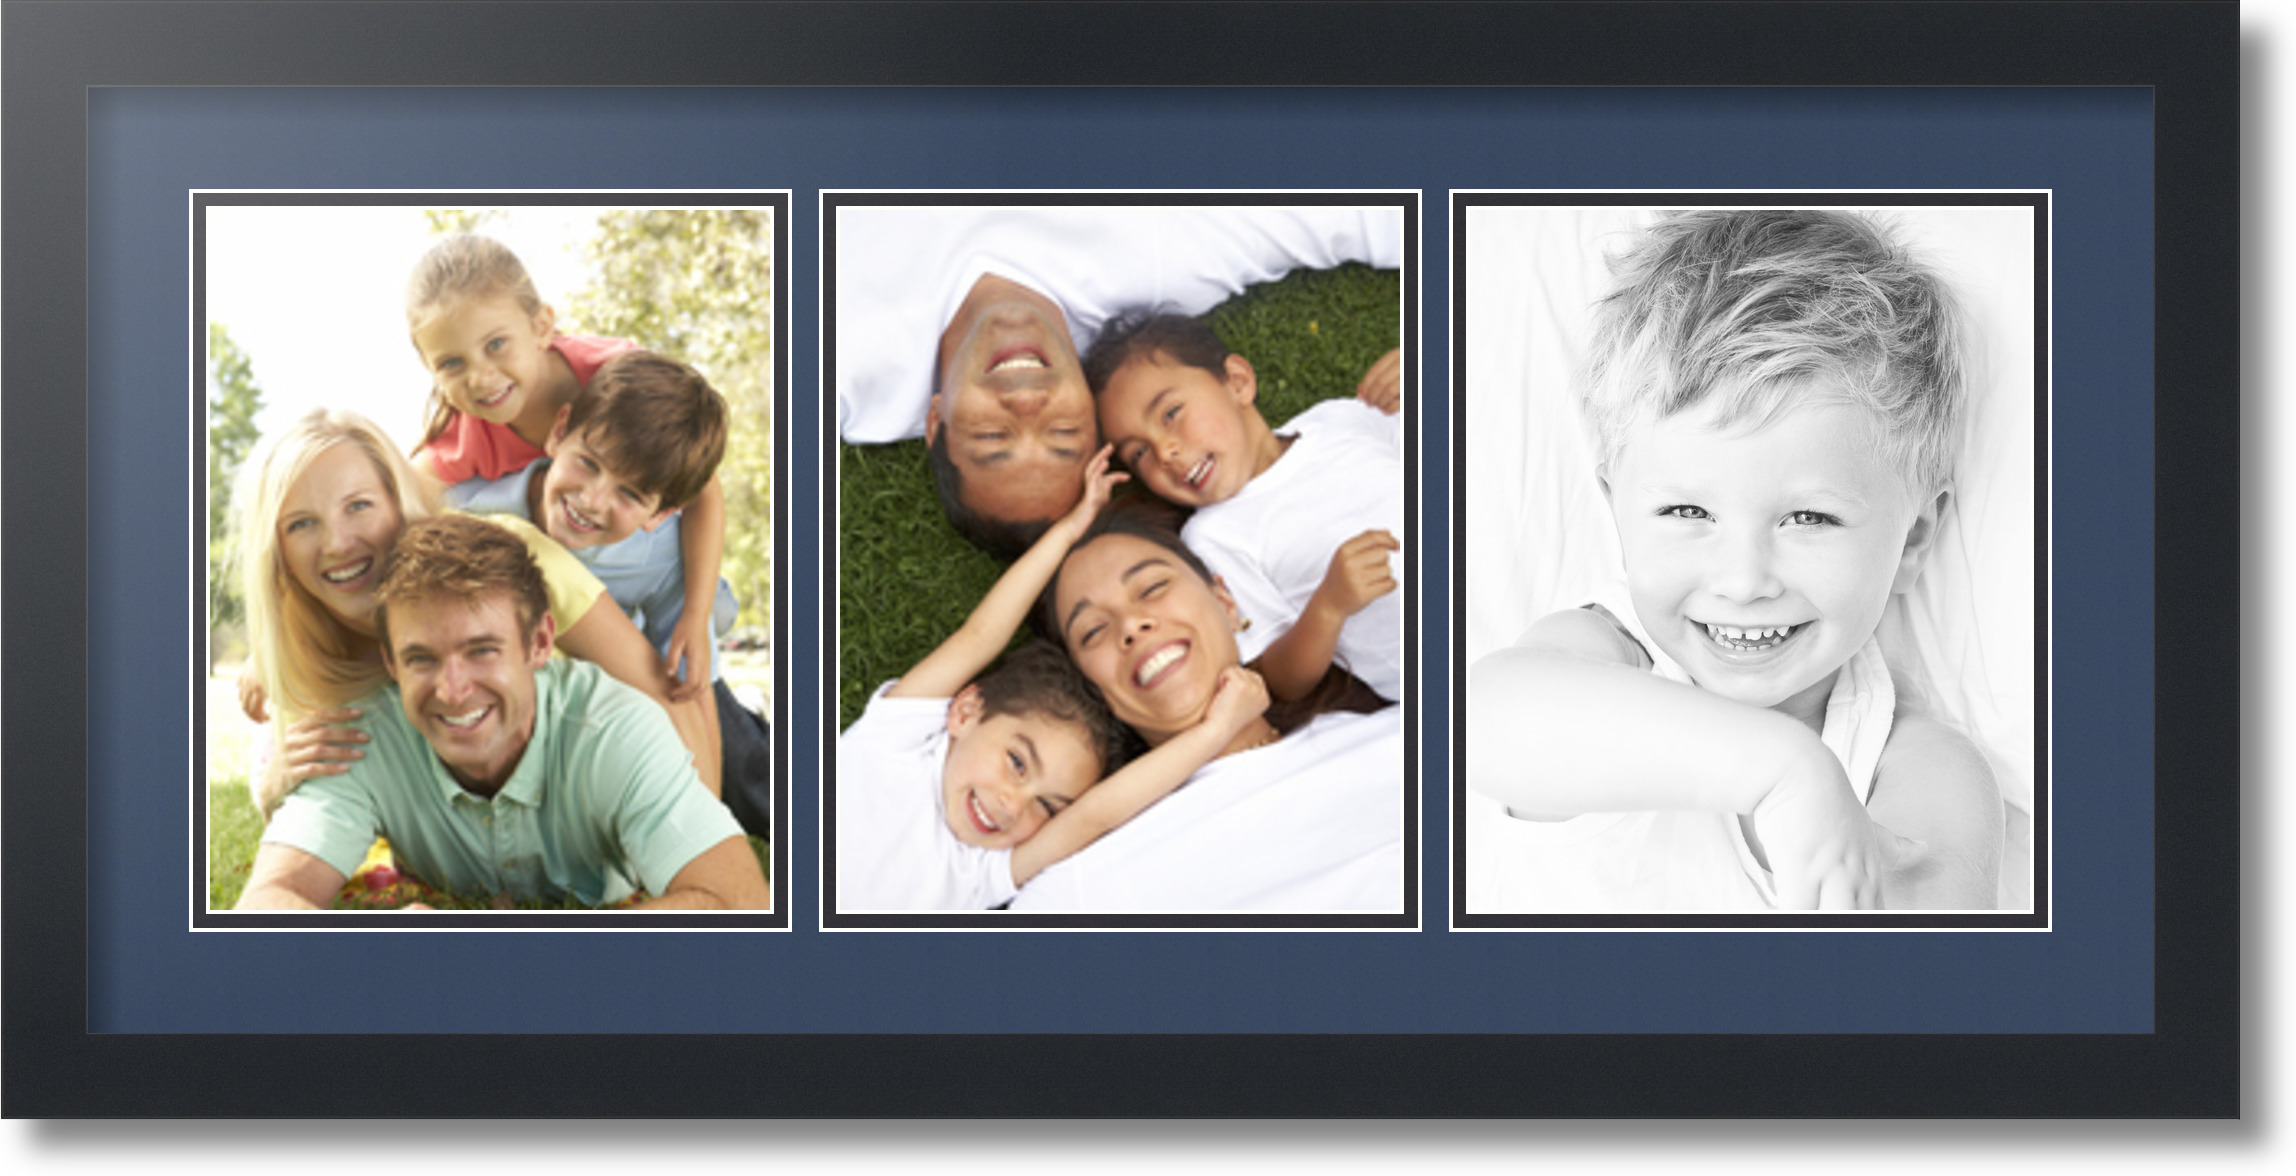 Arttoframes collage mat picture photo frame 3 8x10 openings arttoframes collage mat picture photo frame 3 8x10 jeuxipadfo Images